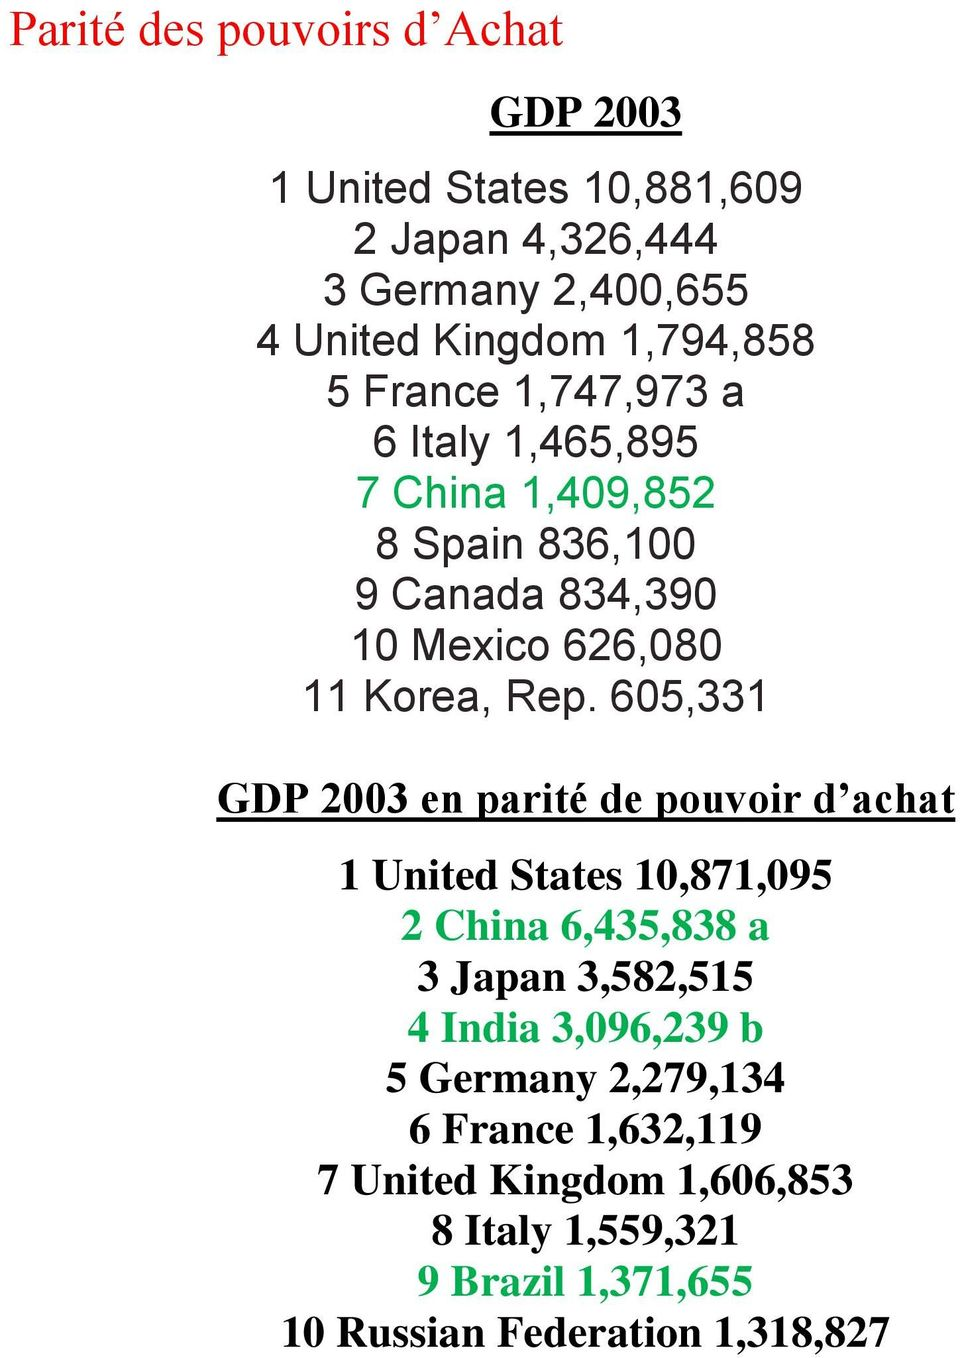 605,331 GDP 2003 en parité de pouvoir d achat 1 United States 10,871,095 2 China 6,435,838 a 3 Japan 3,582,515 4 India 3,096,239